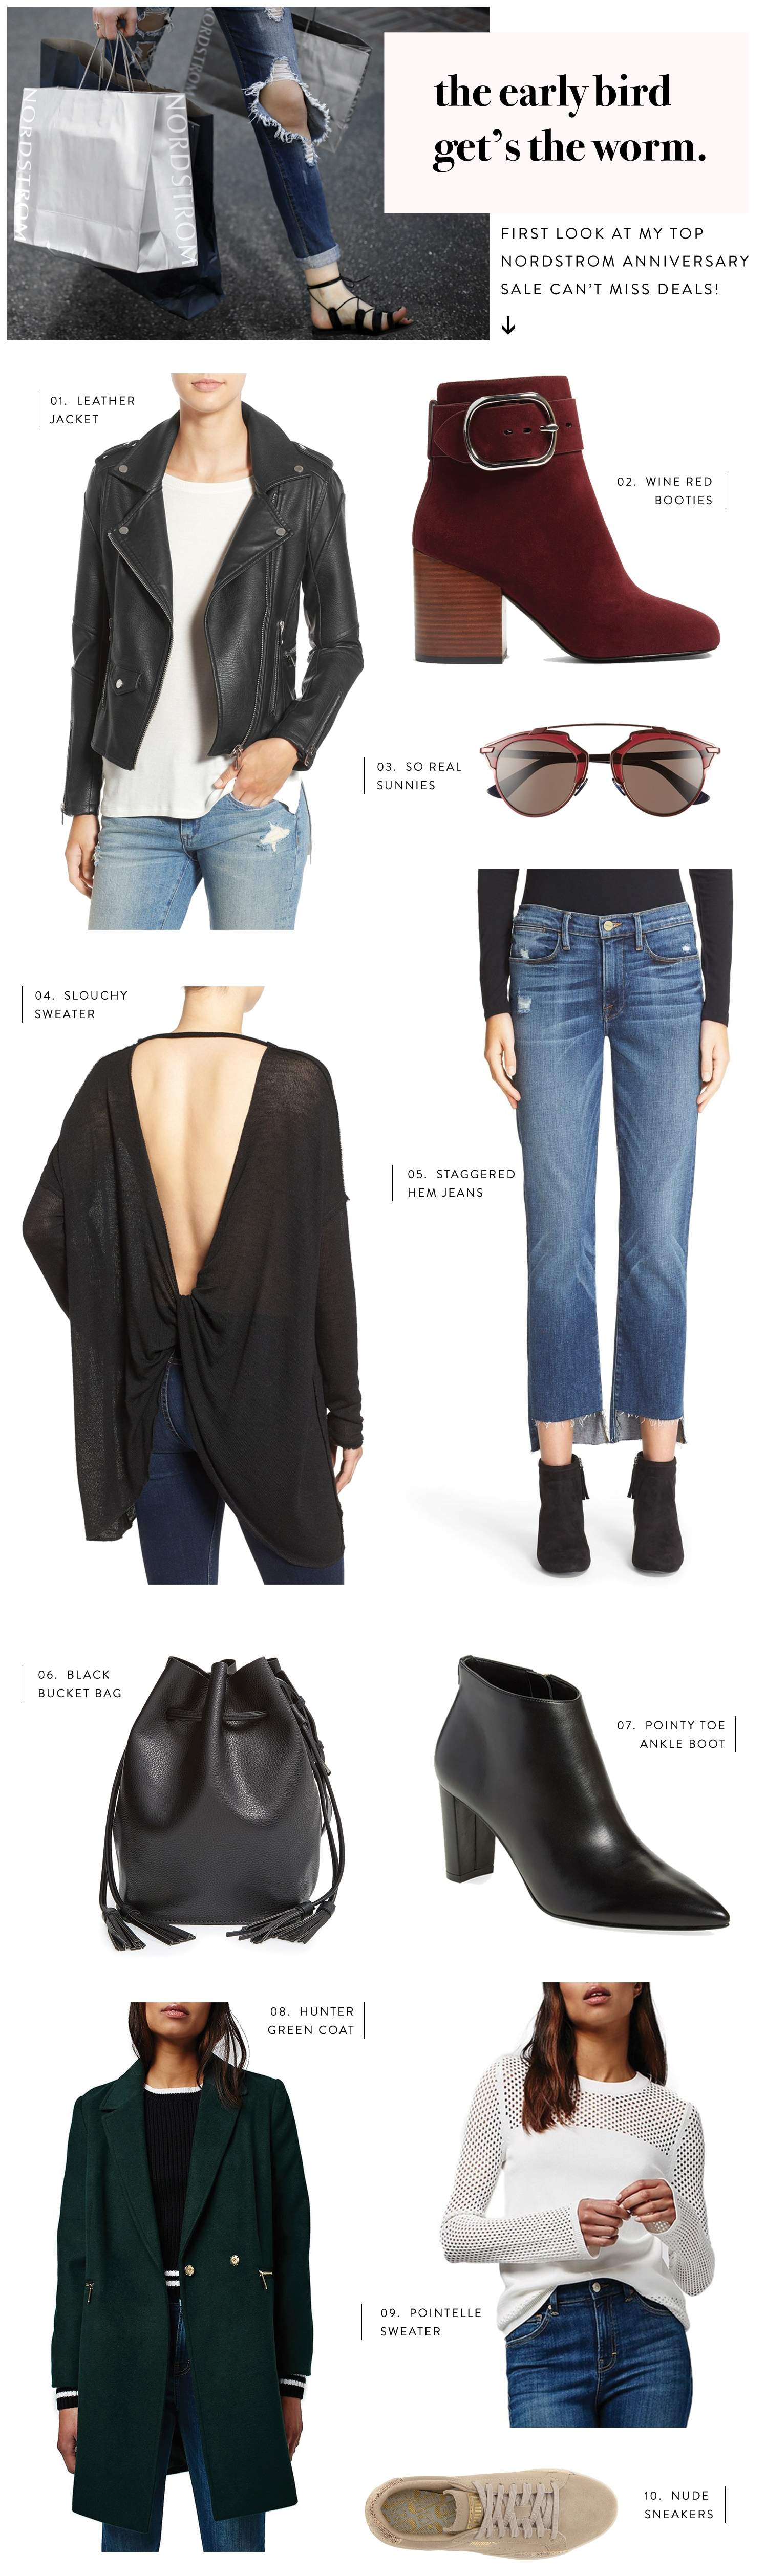 fashionlush, nordstrom anniversary sale, style blogger